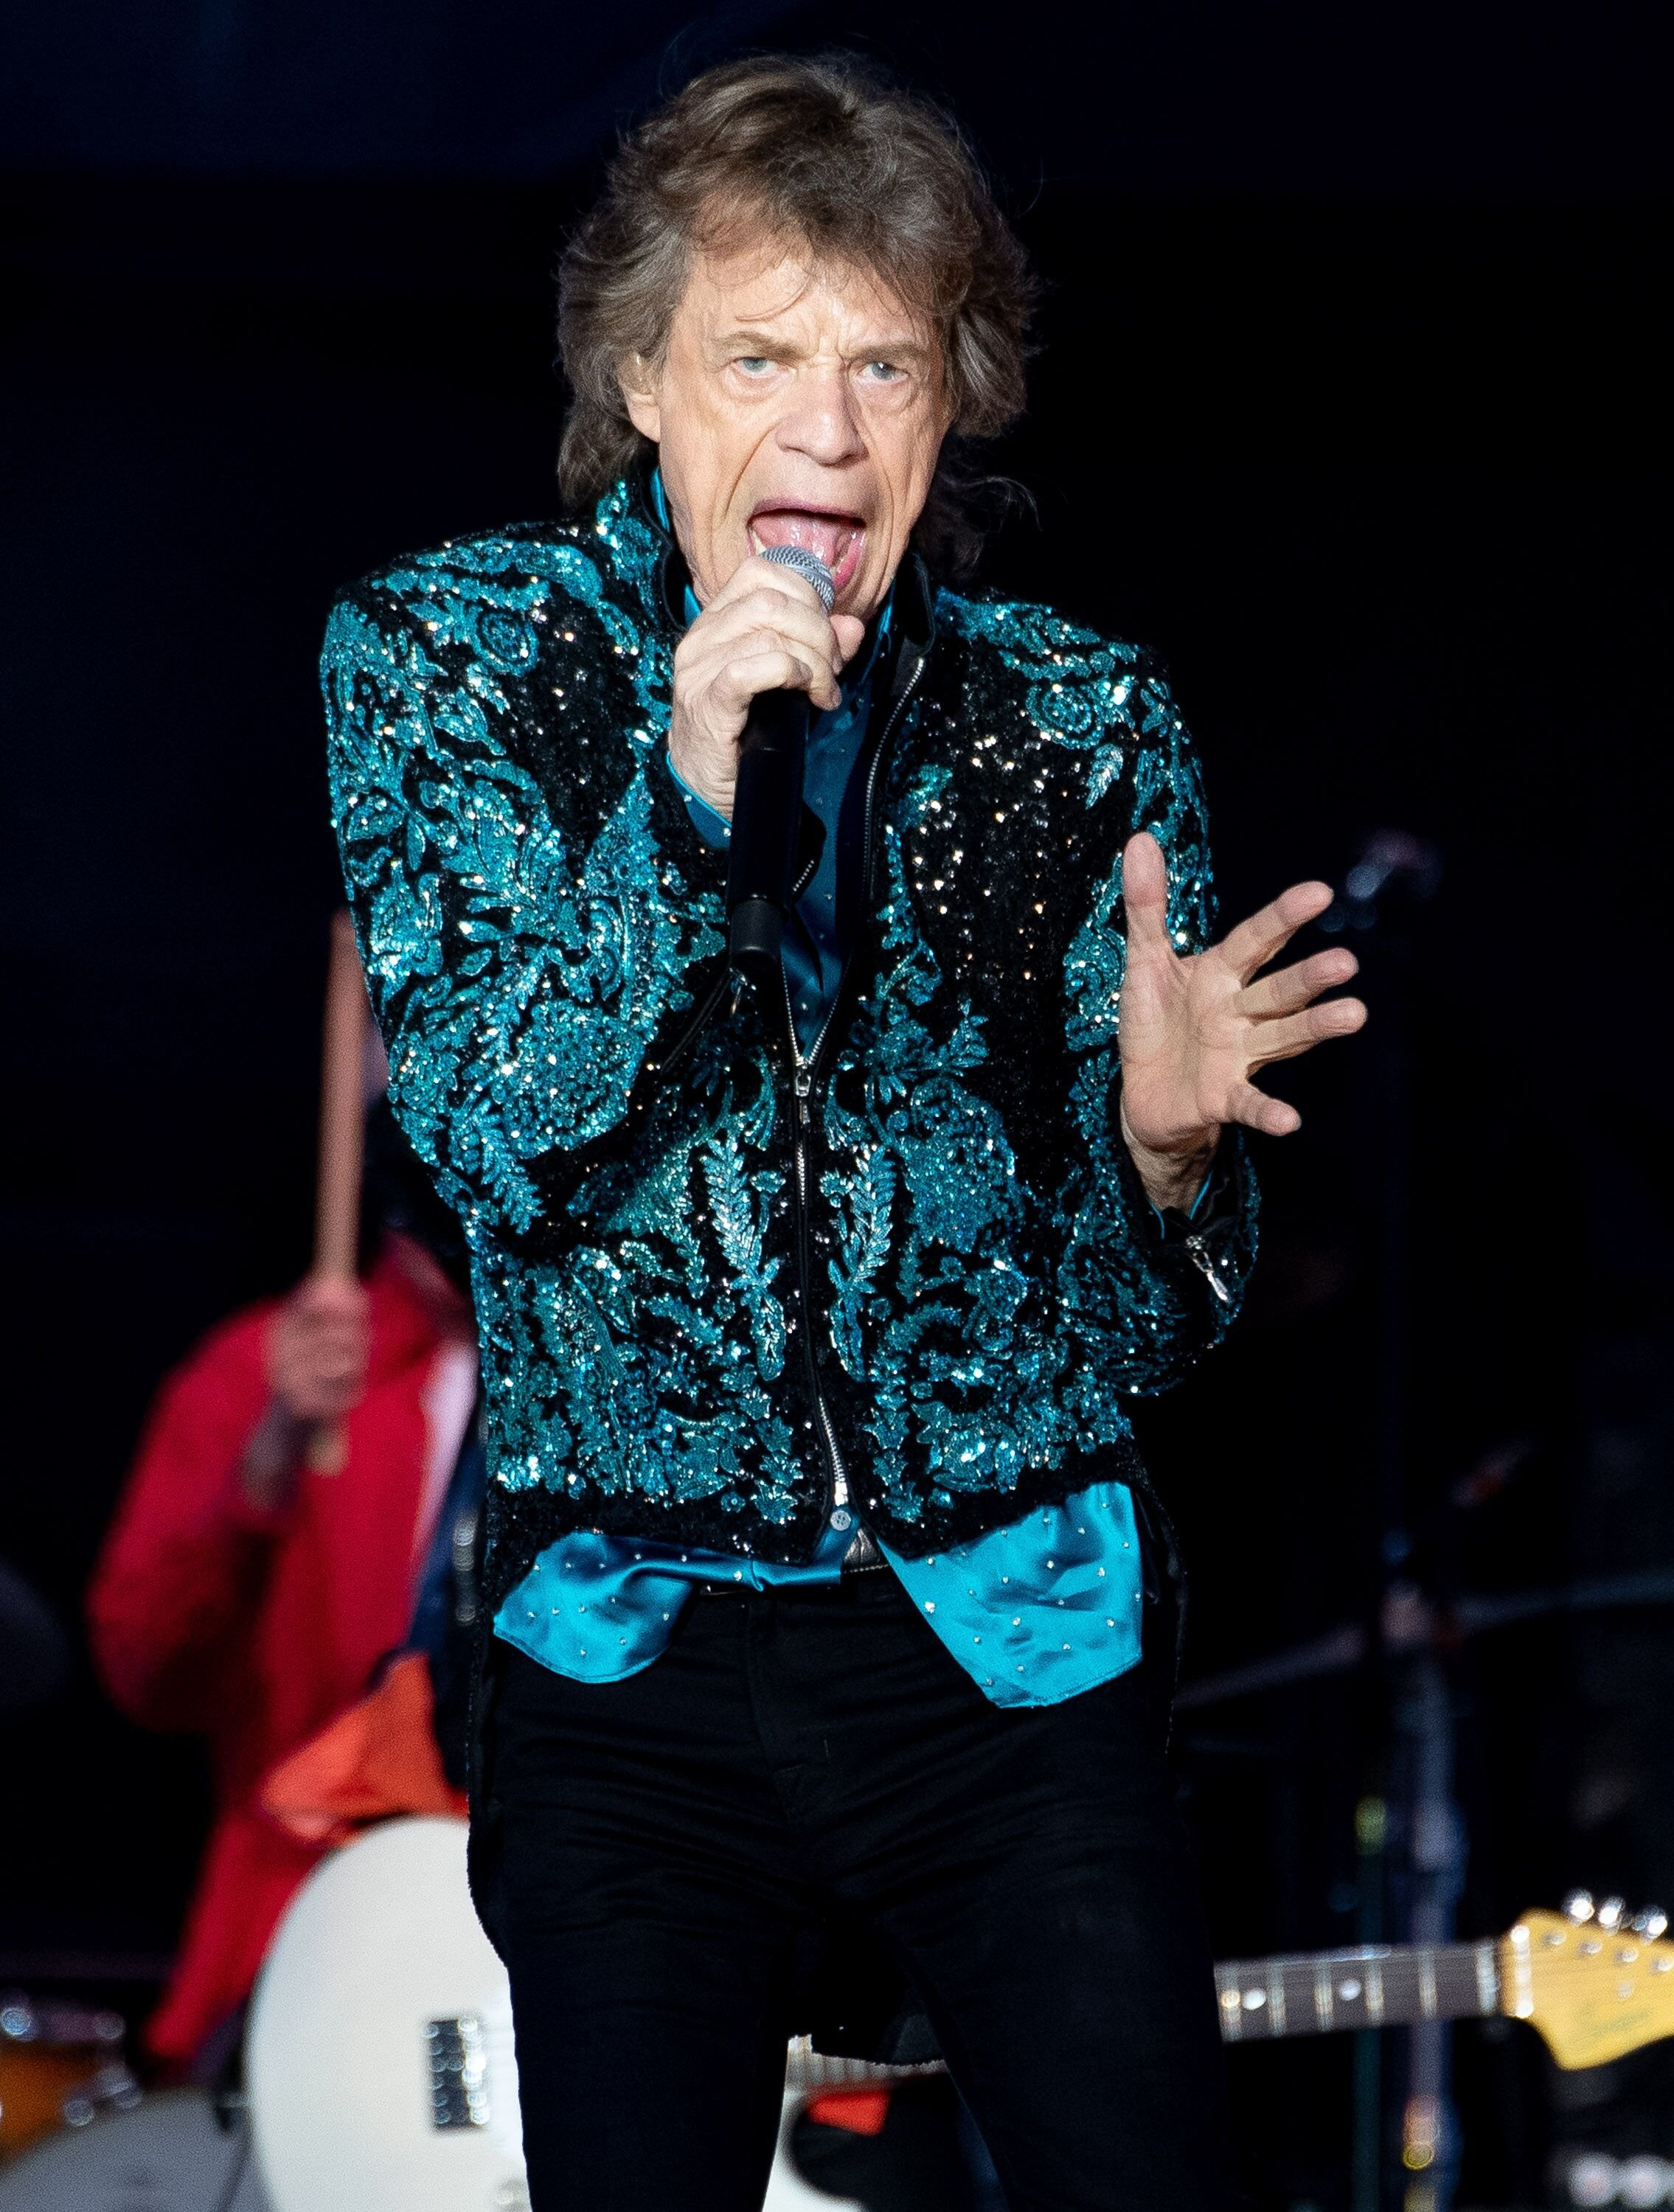 Mick Jagger performs at the Burl's Creek Event Grounds in Canada. | Source: Getty Images